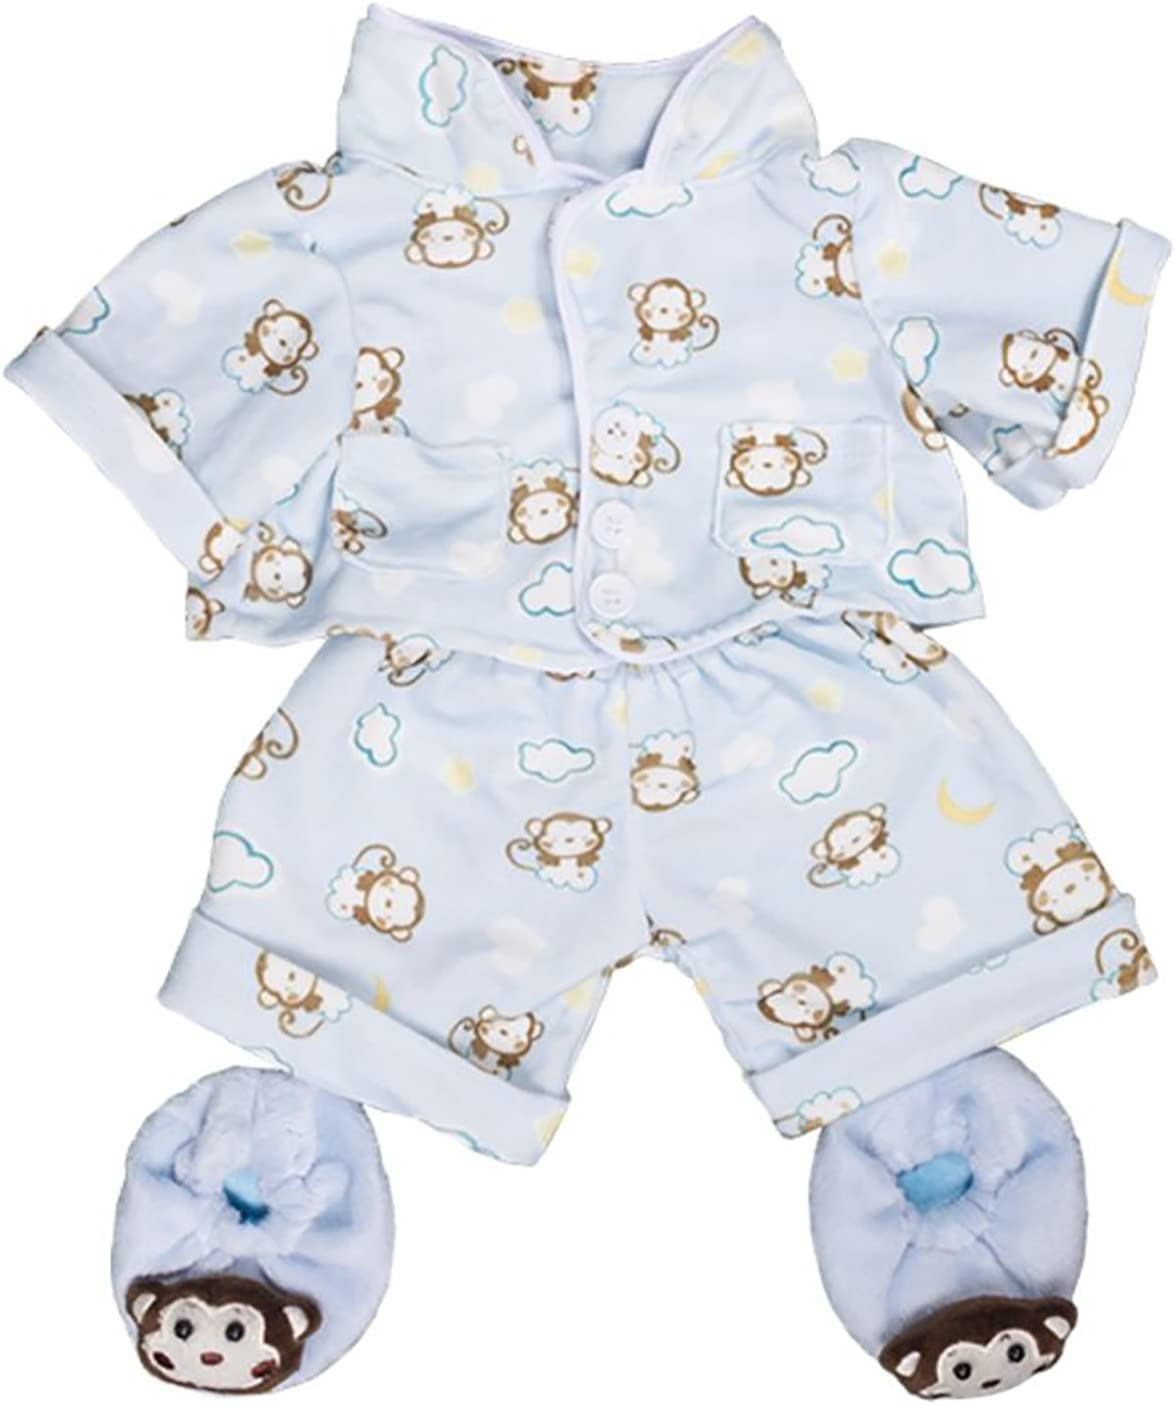 """B01MUS7367 Blue Monkey Pajamas with Slippers Teddy Bear Clothes Outfit Fits Most 8""""-10"""" Build-A-Bear, Vermont Teddy Bear, and Make 71-NjINd01L"""